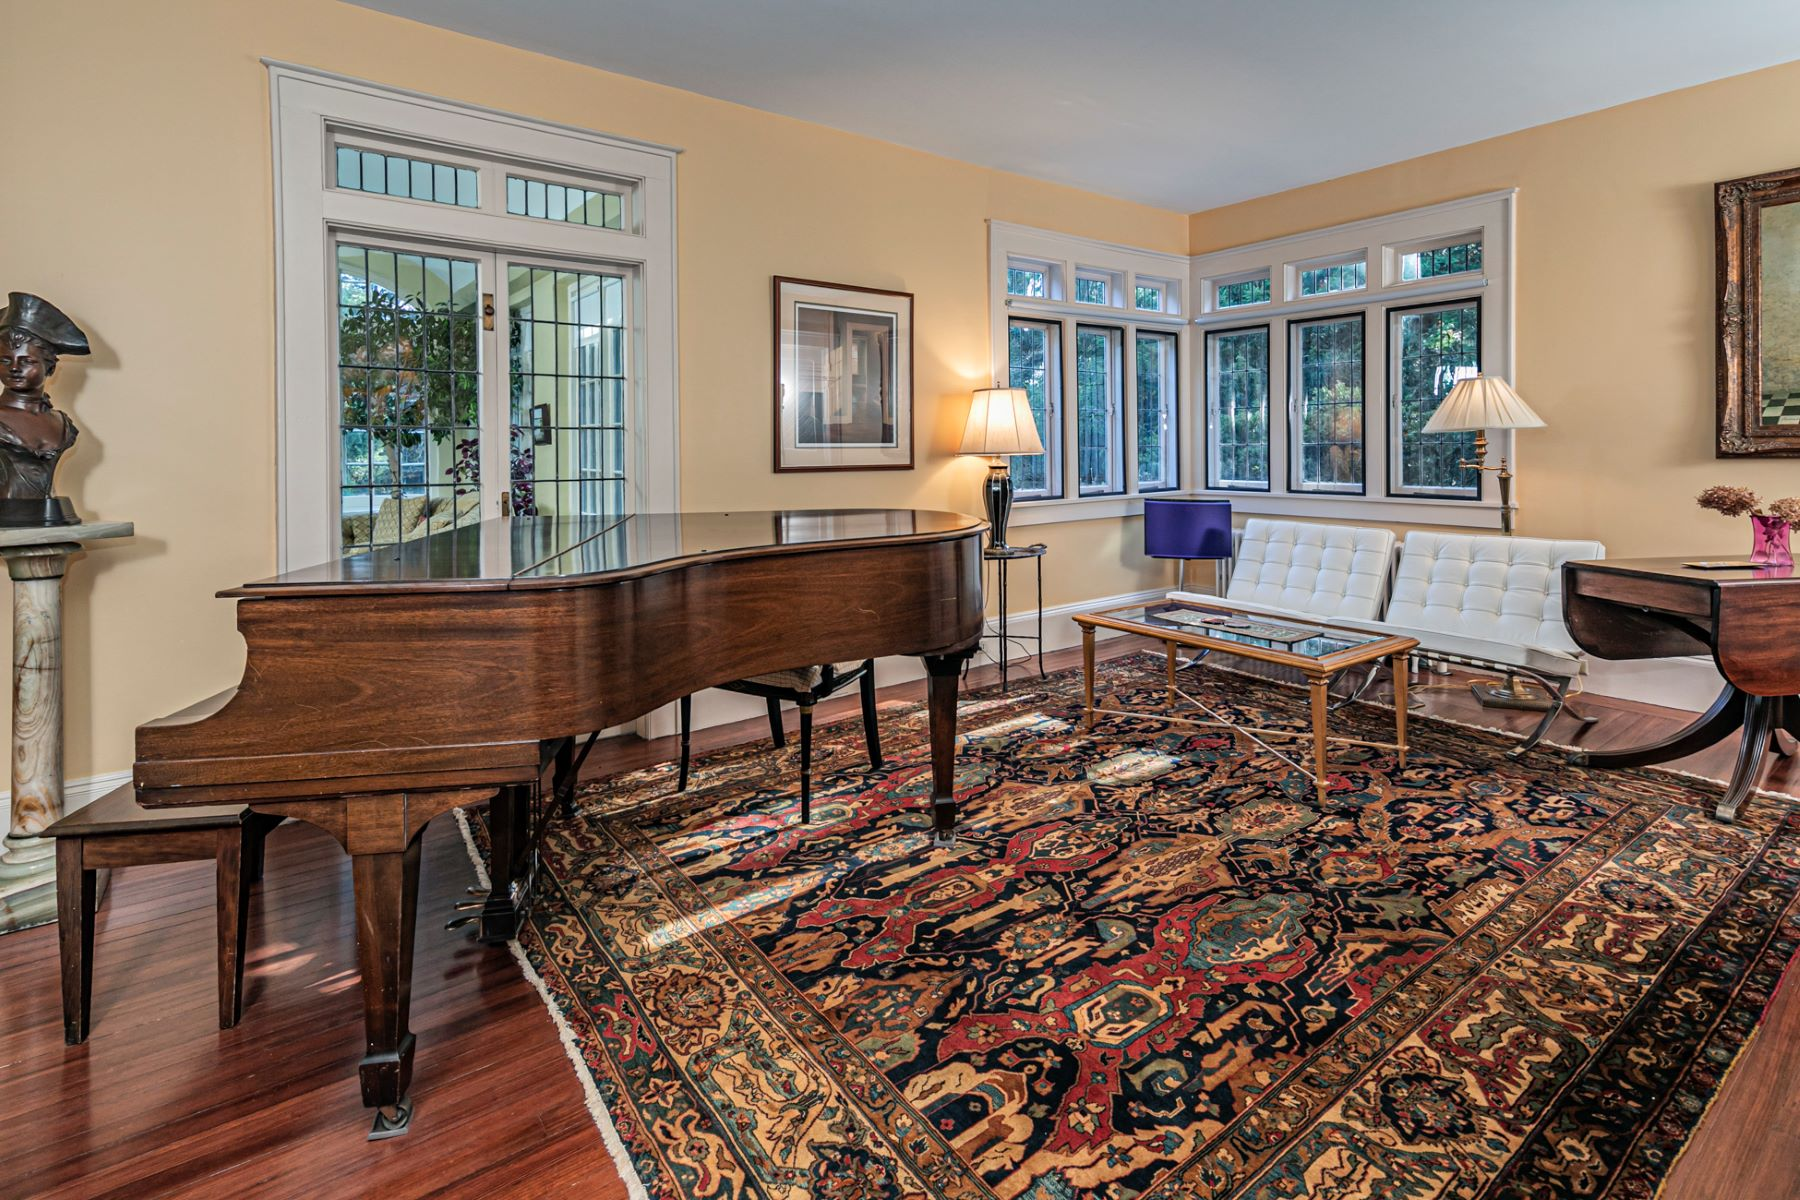 Additional photo for property listing at A Prized Location for the Vreeland House 180 Mercer Street, Princeton, New Jersey 08540 United States